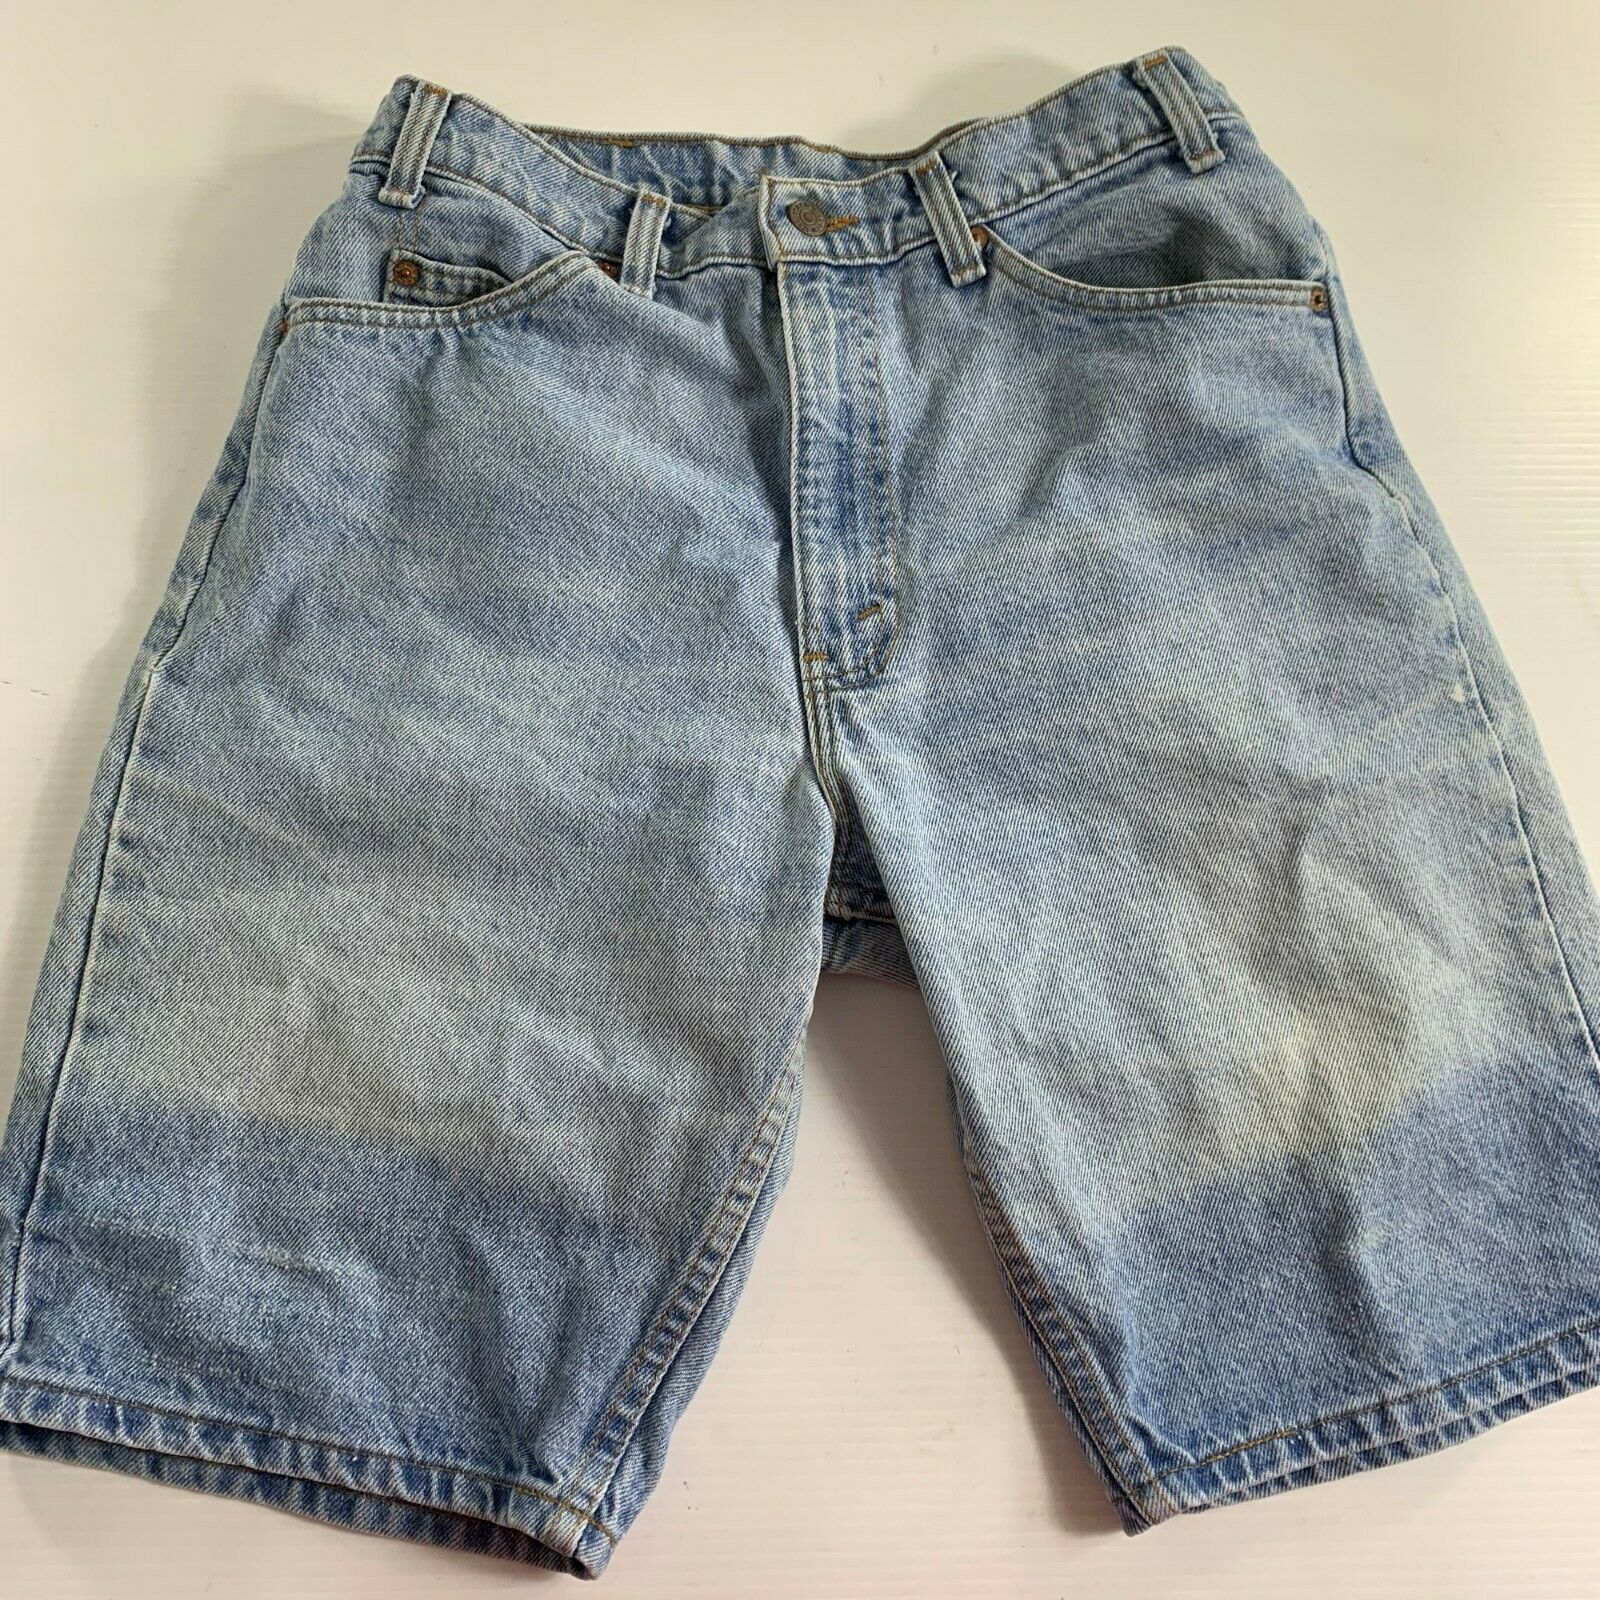 Primary image for Levis Womens Shorts Size W 33 Vintage Denim Blue Jean Distressed Light Wash USA